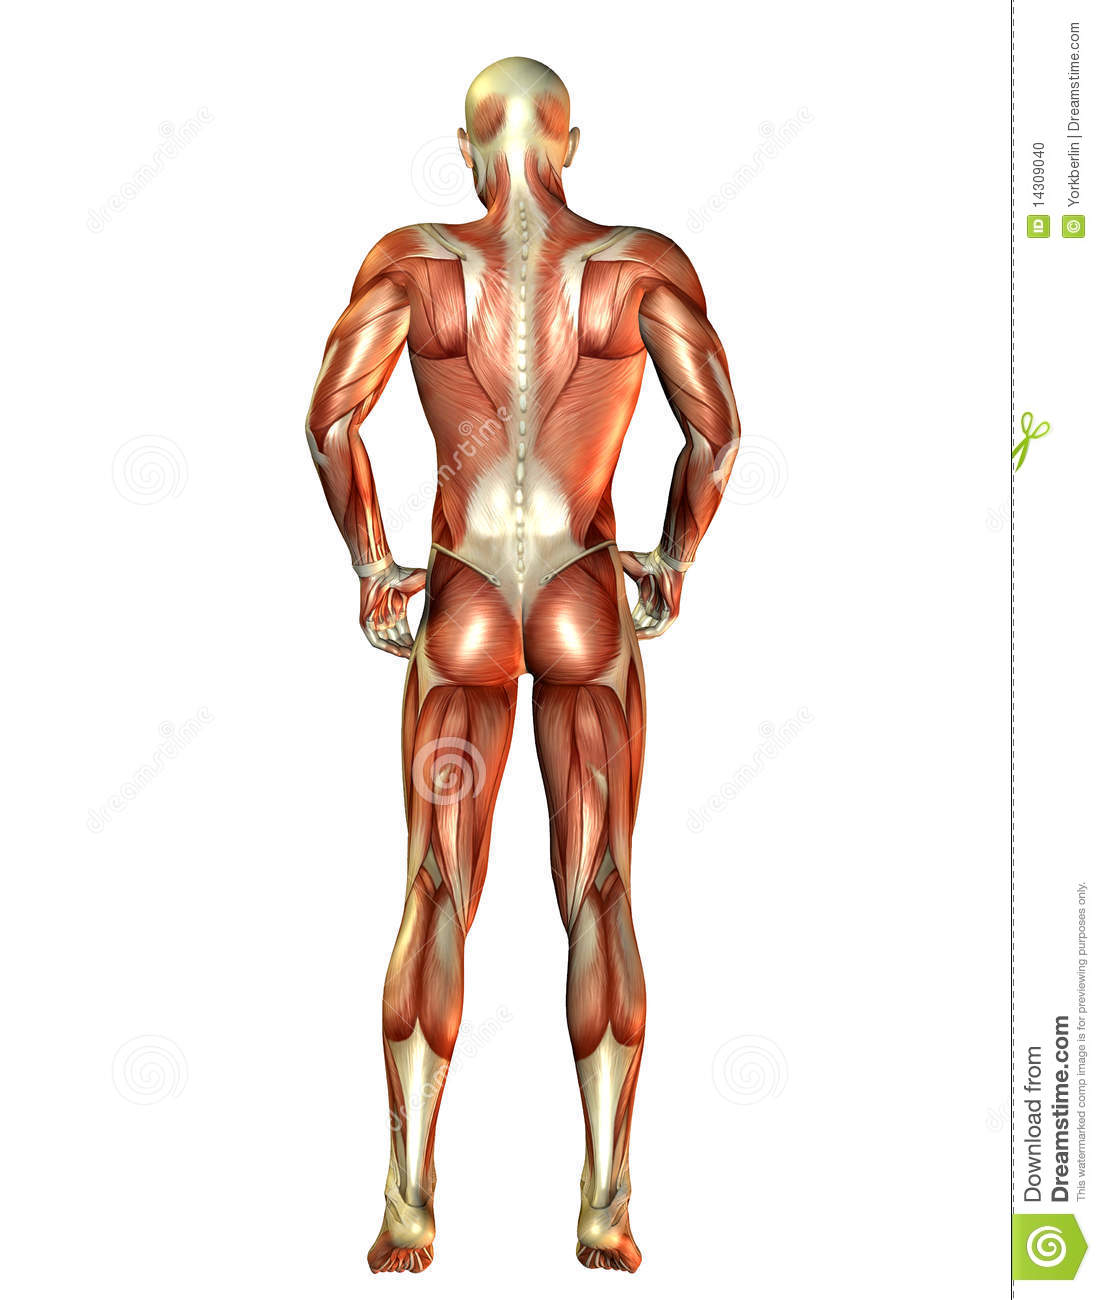 man muscles back view stock photo - image: 14309040, Muscles